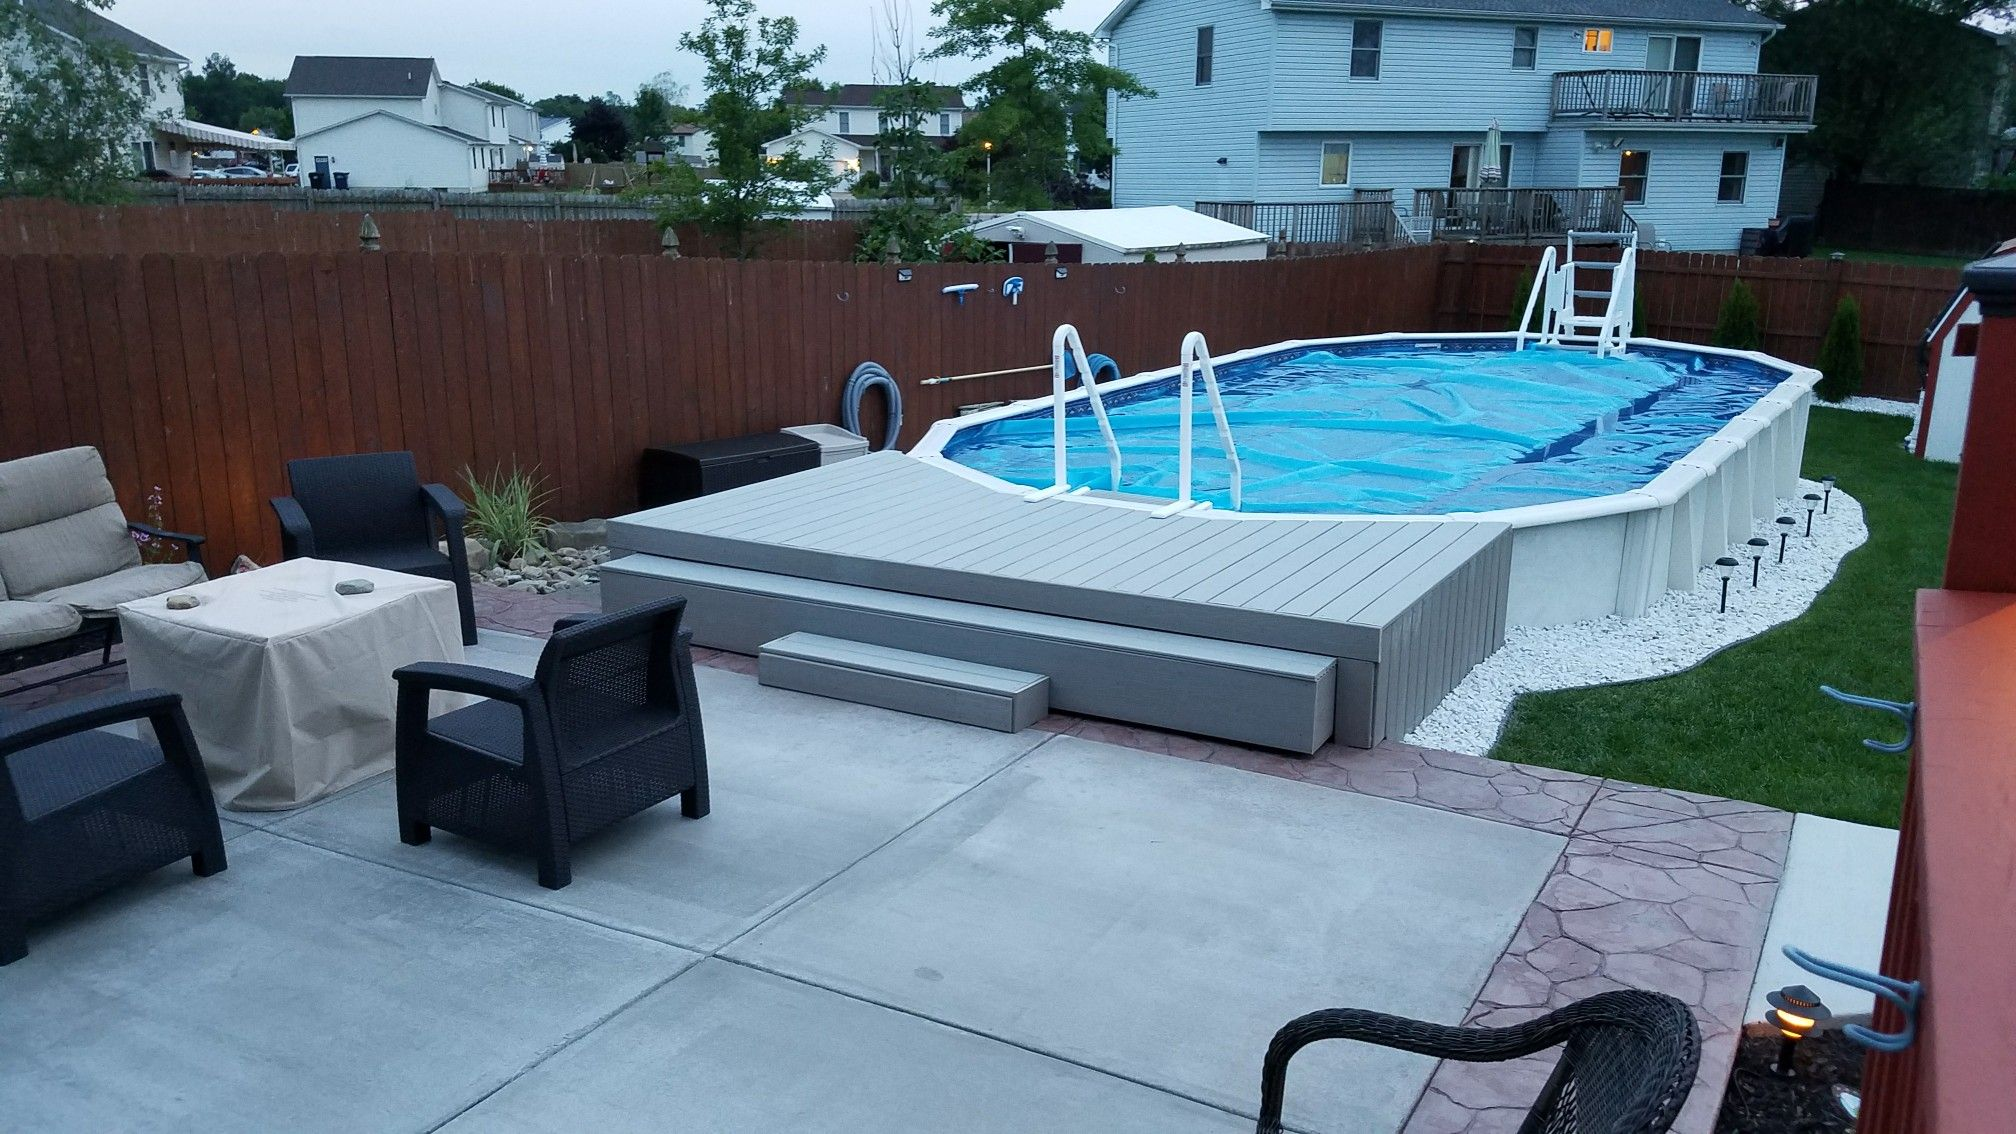 concrete patio and floating deck to semi recessed above ground pool